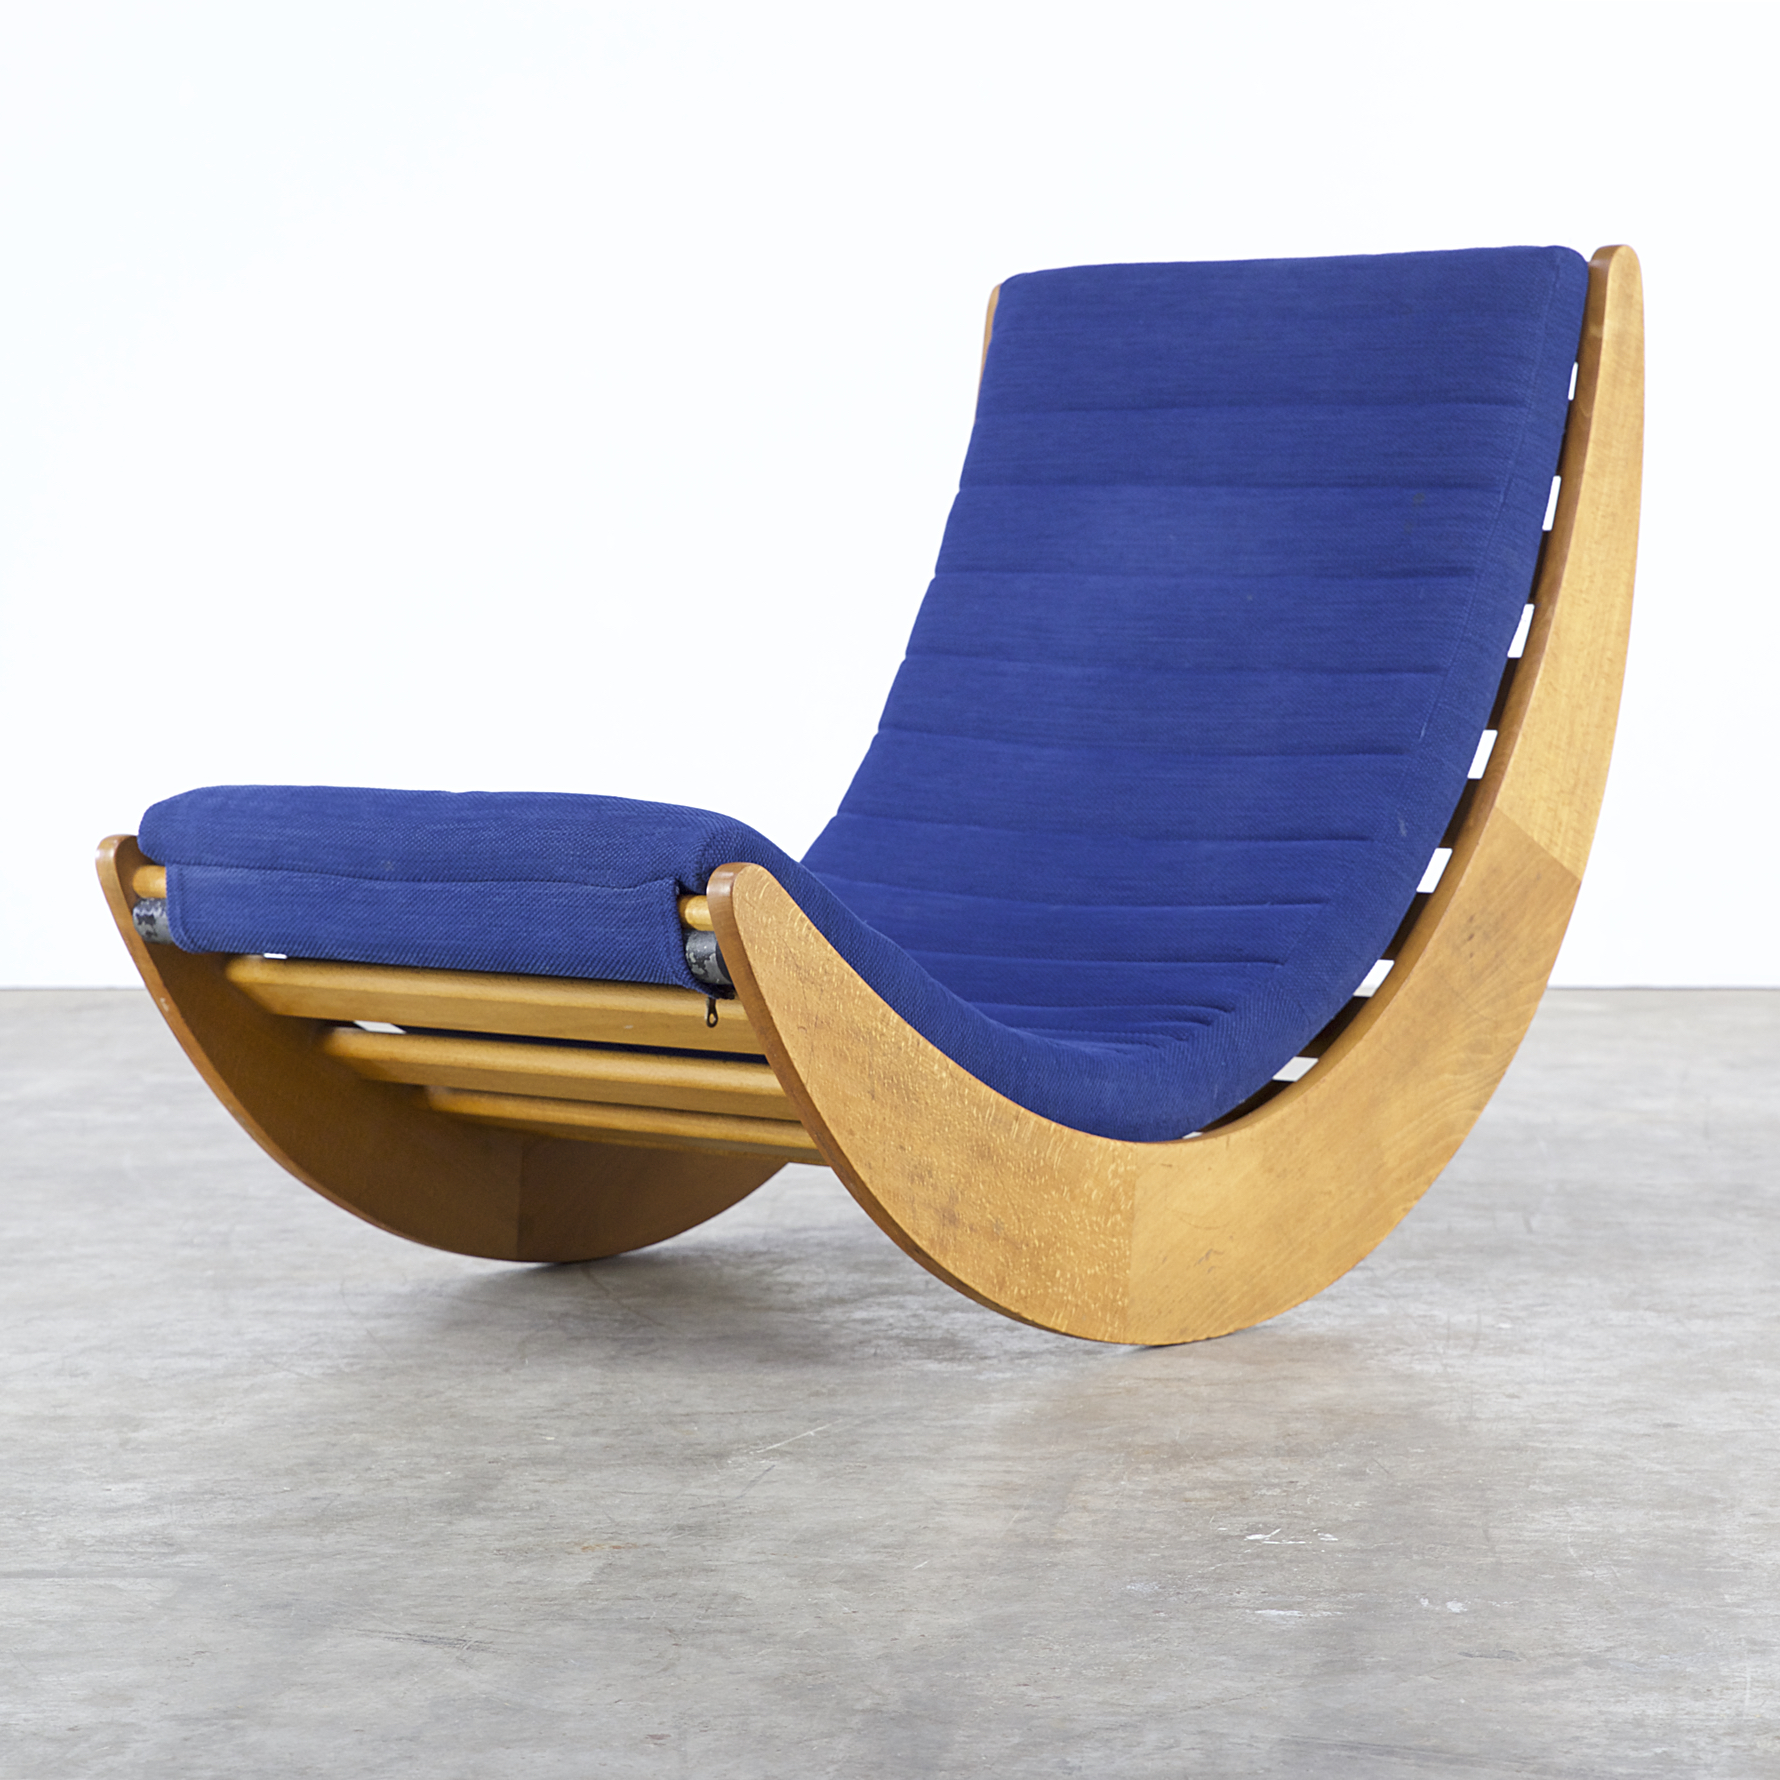 70s verner panton rocking chair for rosenthal barbmama. Black Bedroom Furniture Sets. Home Design Ideas